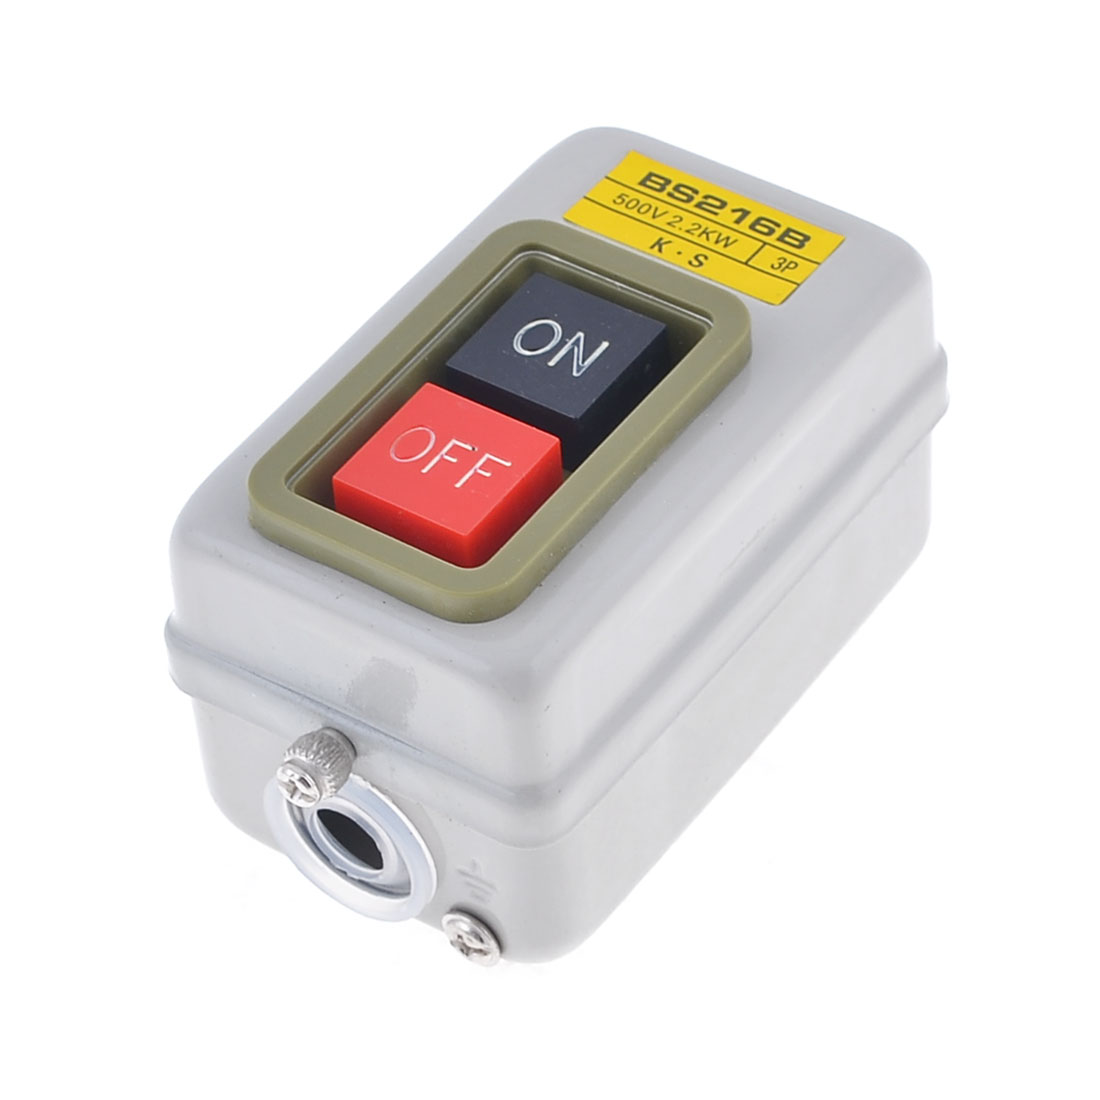 3P 500V 2.2kW Screw Terminals On/Off Self Lock Power Pushbutton Switch